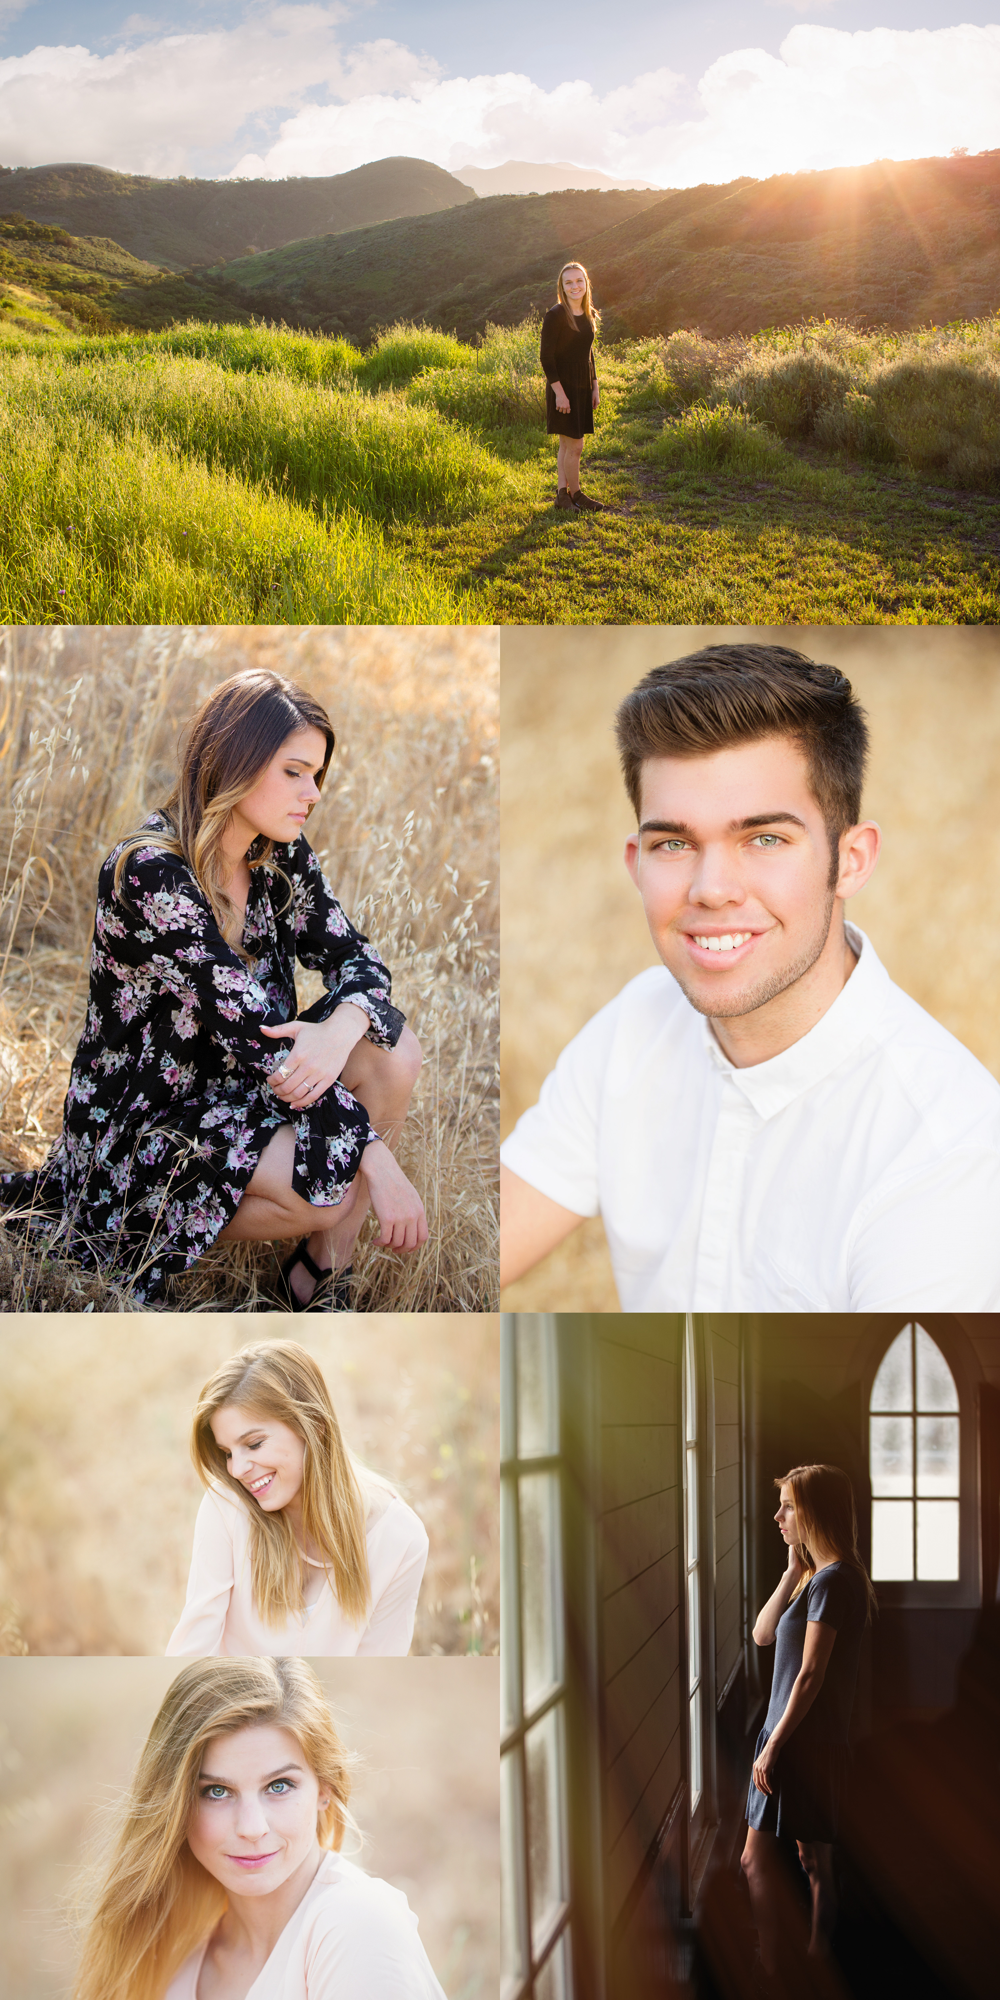 Westlake Village Photographer